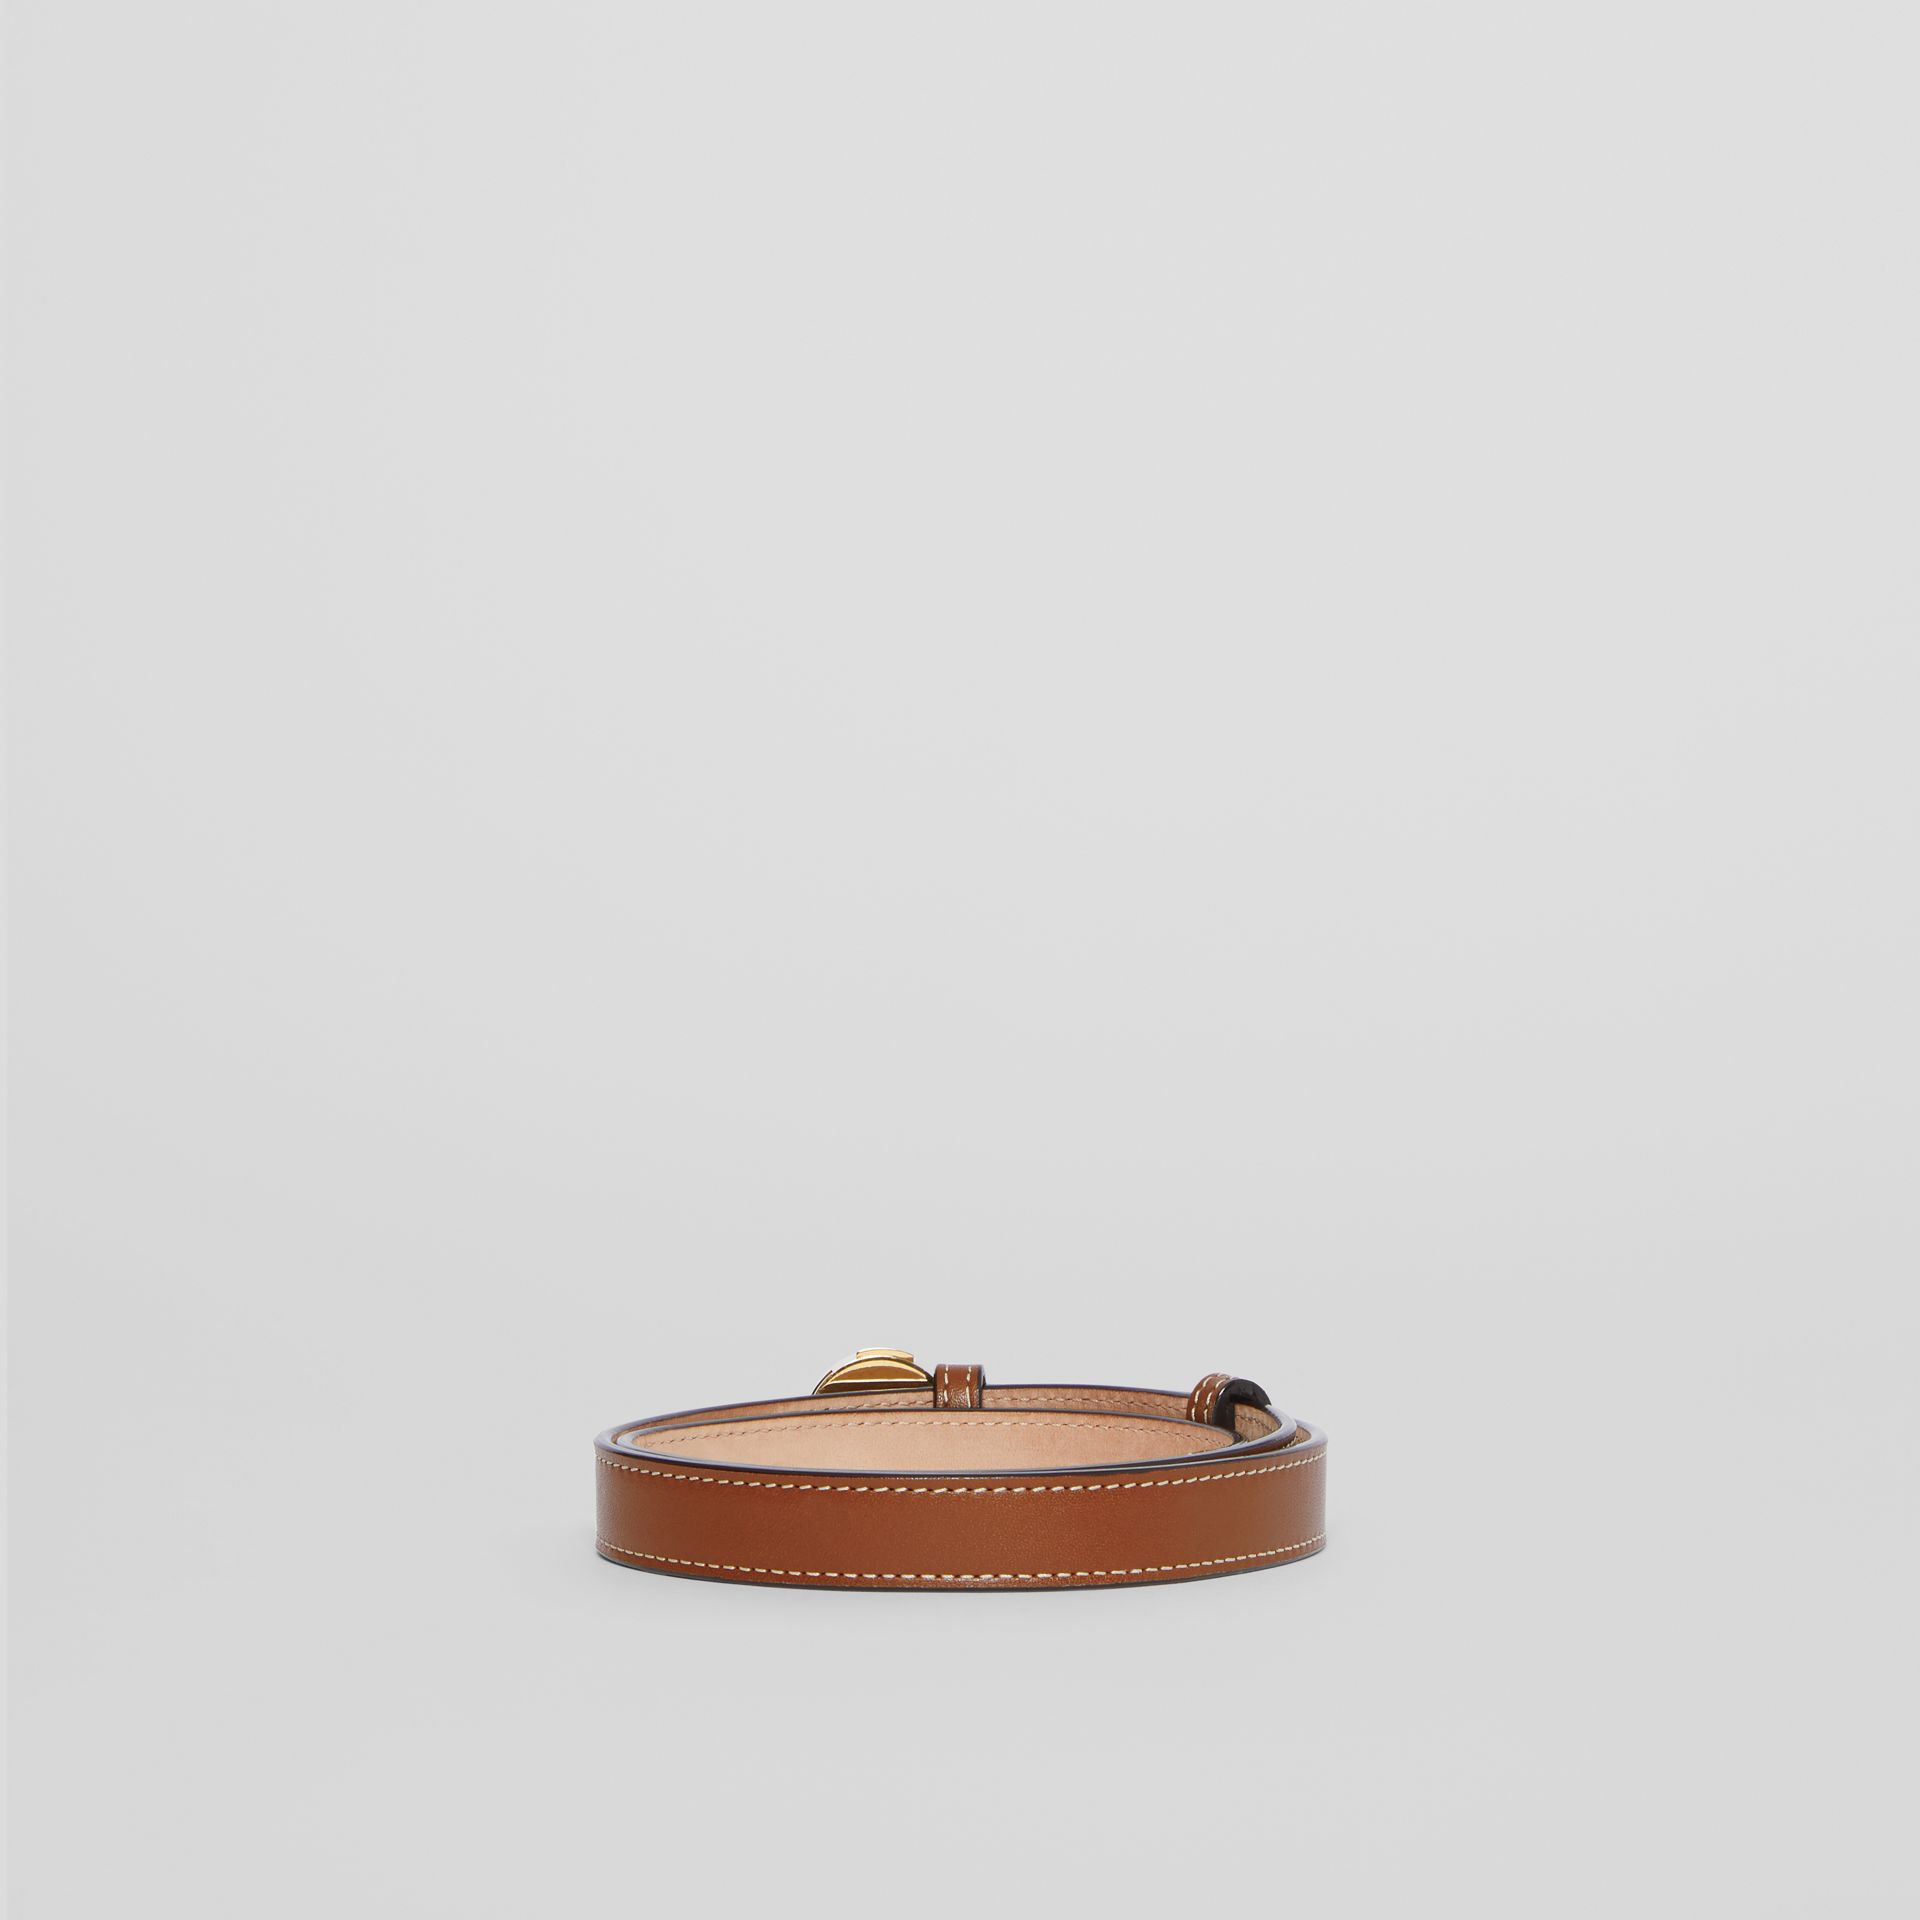 Monogram Motif Leather Belt in Tan - Women | Burberry - gallery image 4